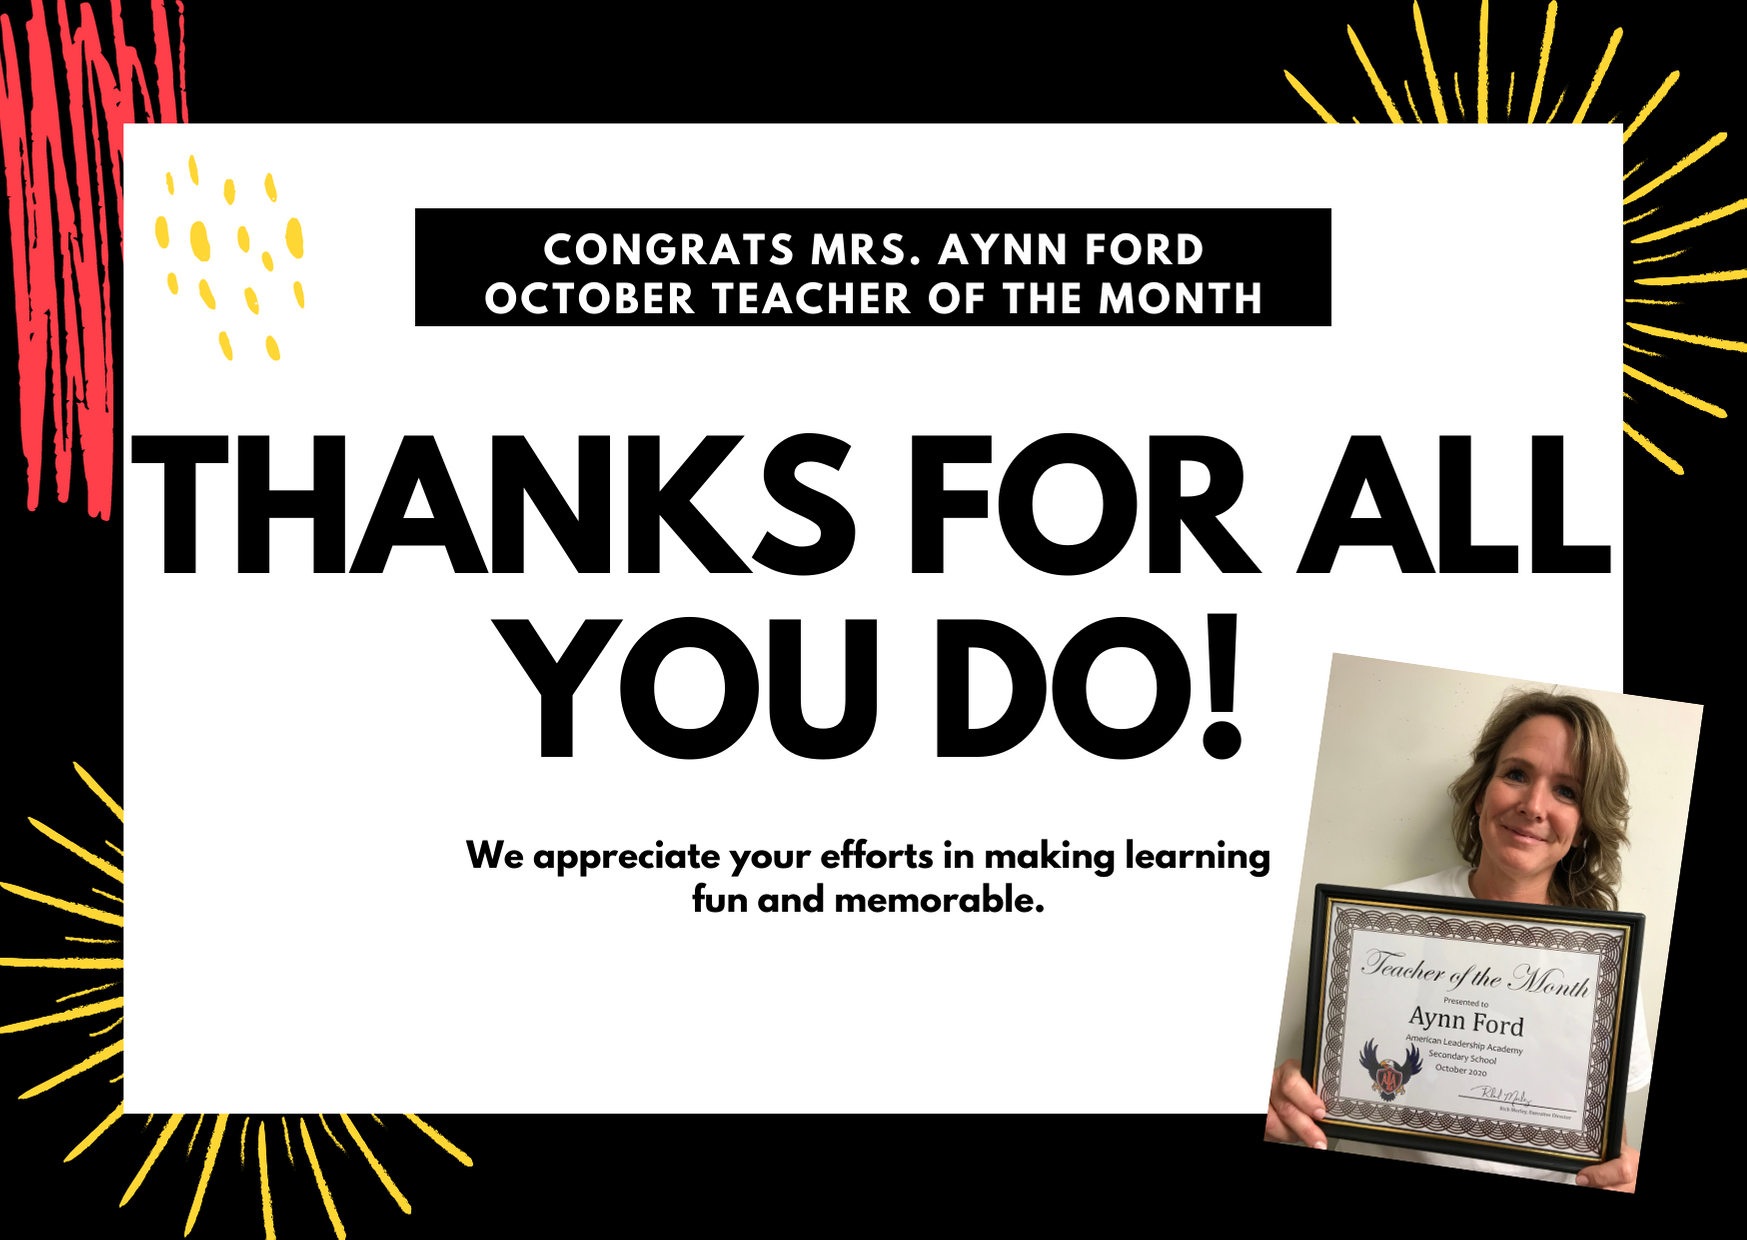 Congratulations to Ms. Aynn Ford